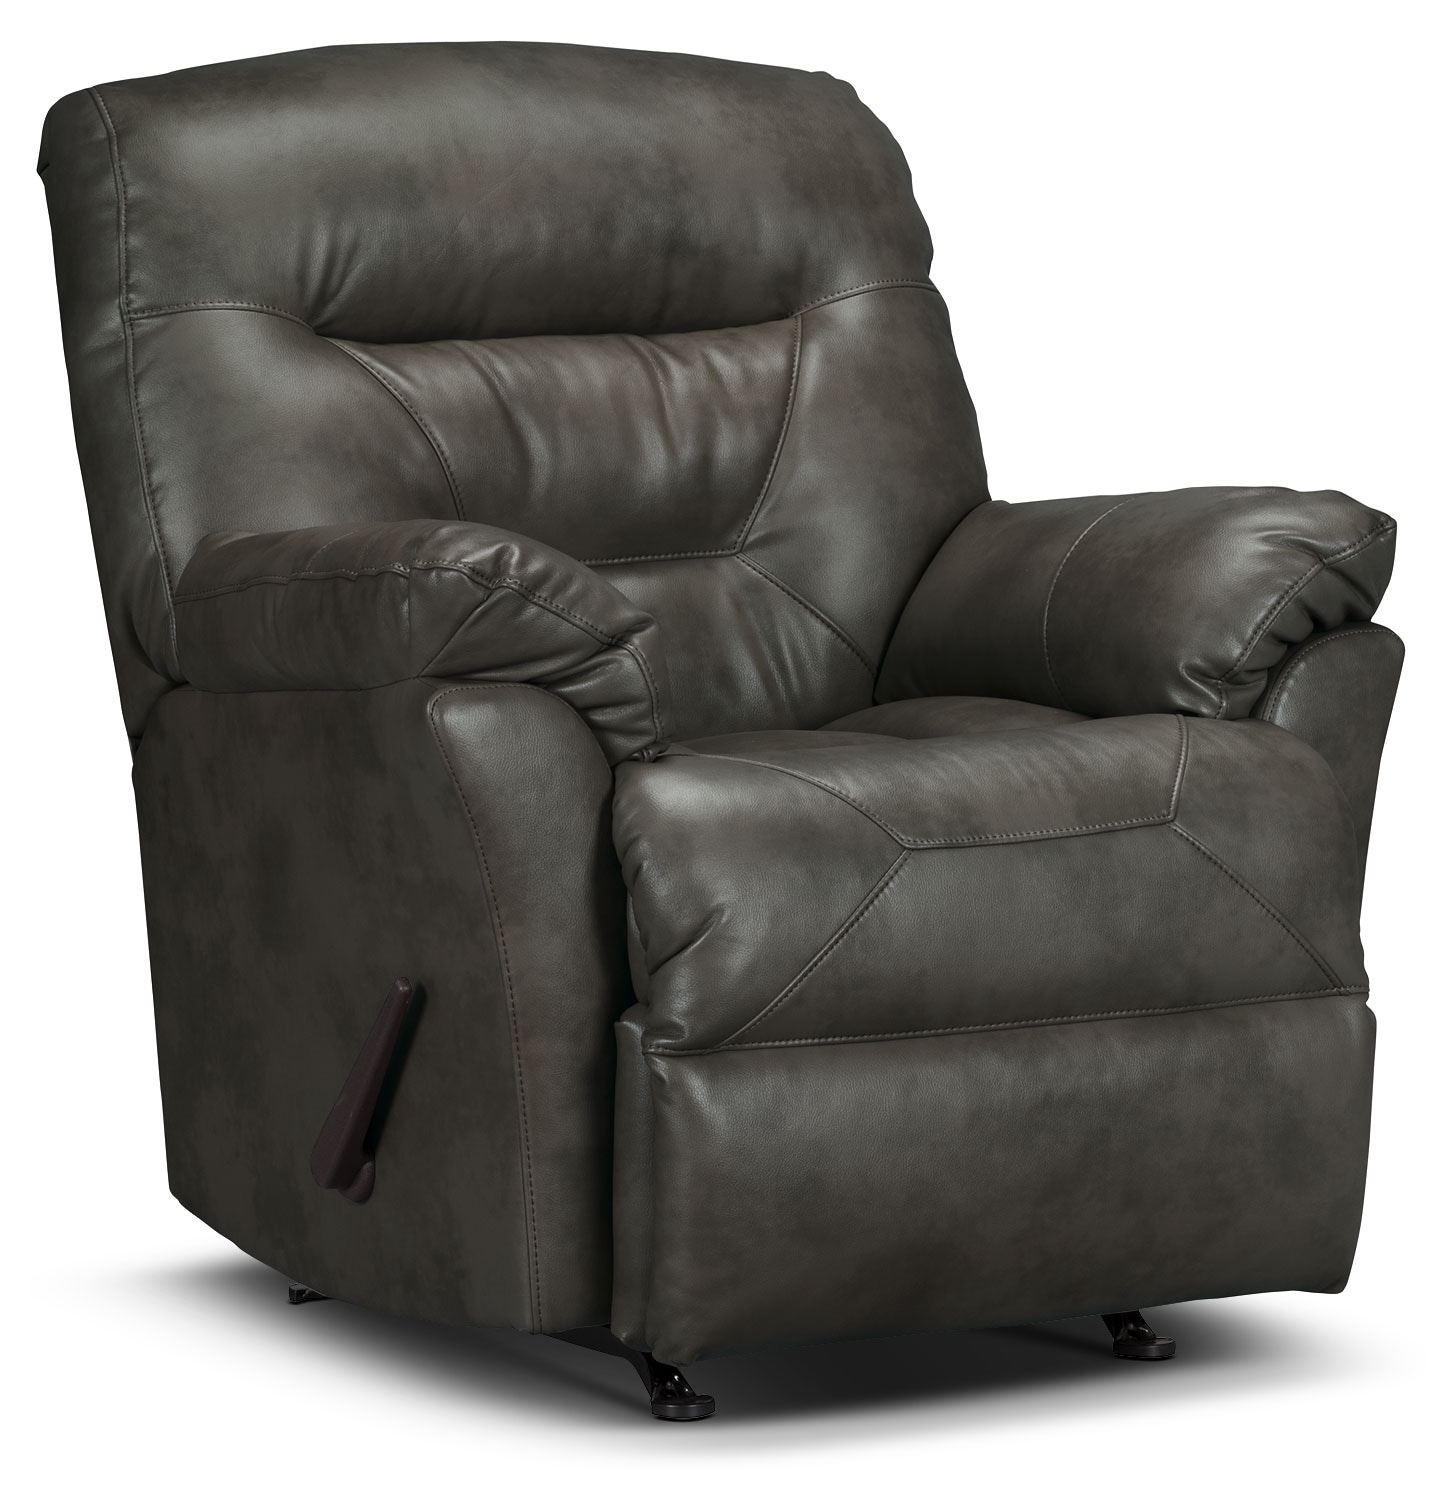 Designed2B Recliner 4579 Leather-Look Fabric Rocker Recliner - Seal